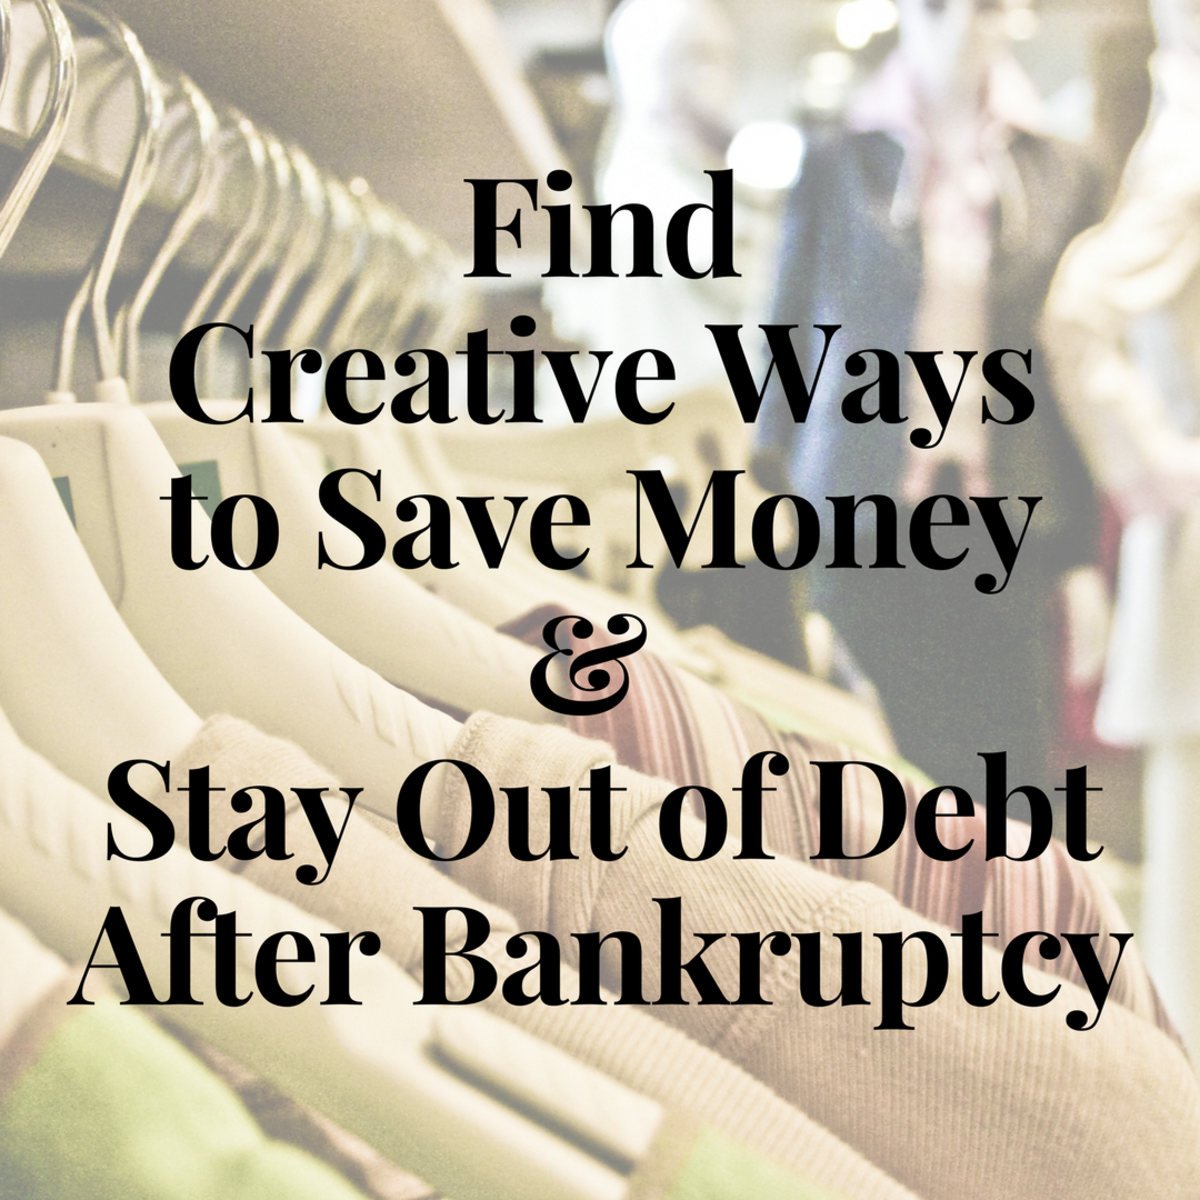 Avoid new debt by finding ways to cut costs. For example, shop the clearance rack in the back of your favorite clothing stores or purchase clothes off-season for big savings, even on brand names.